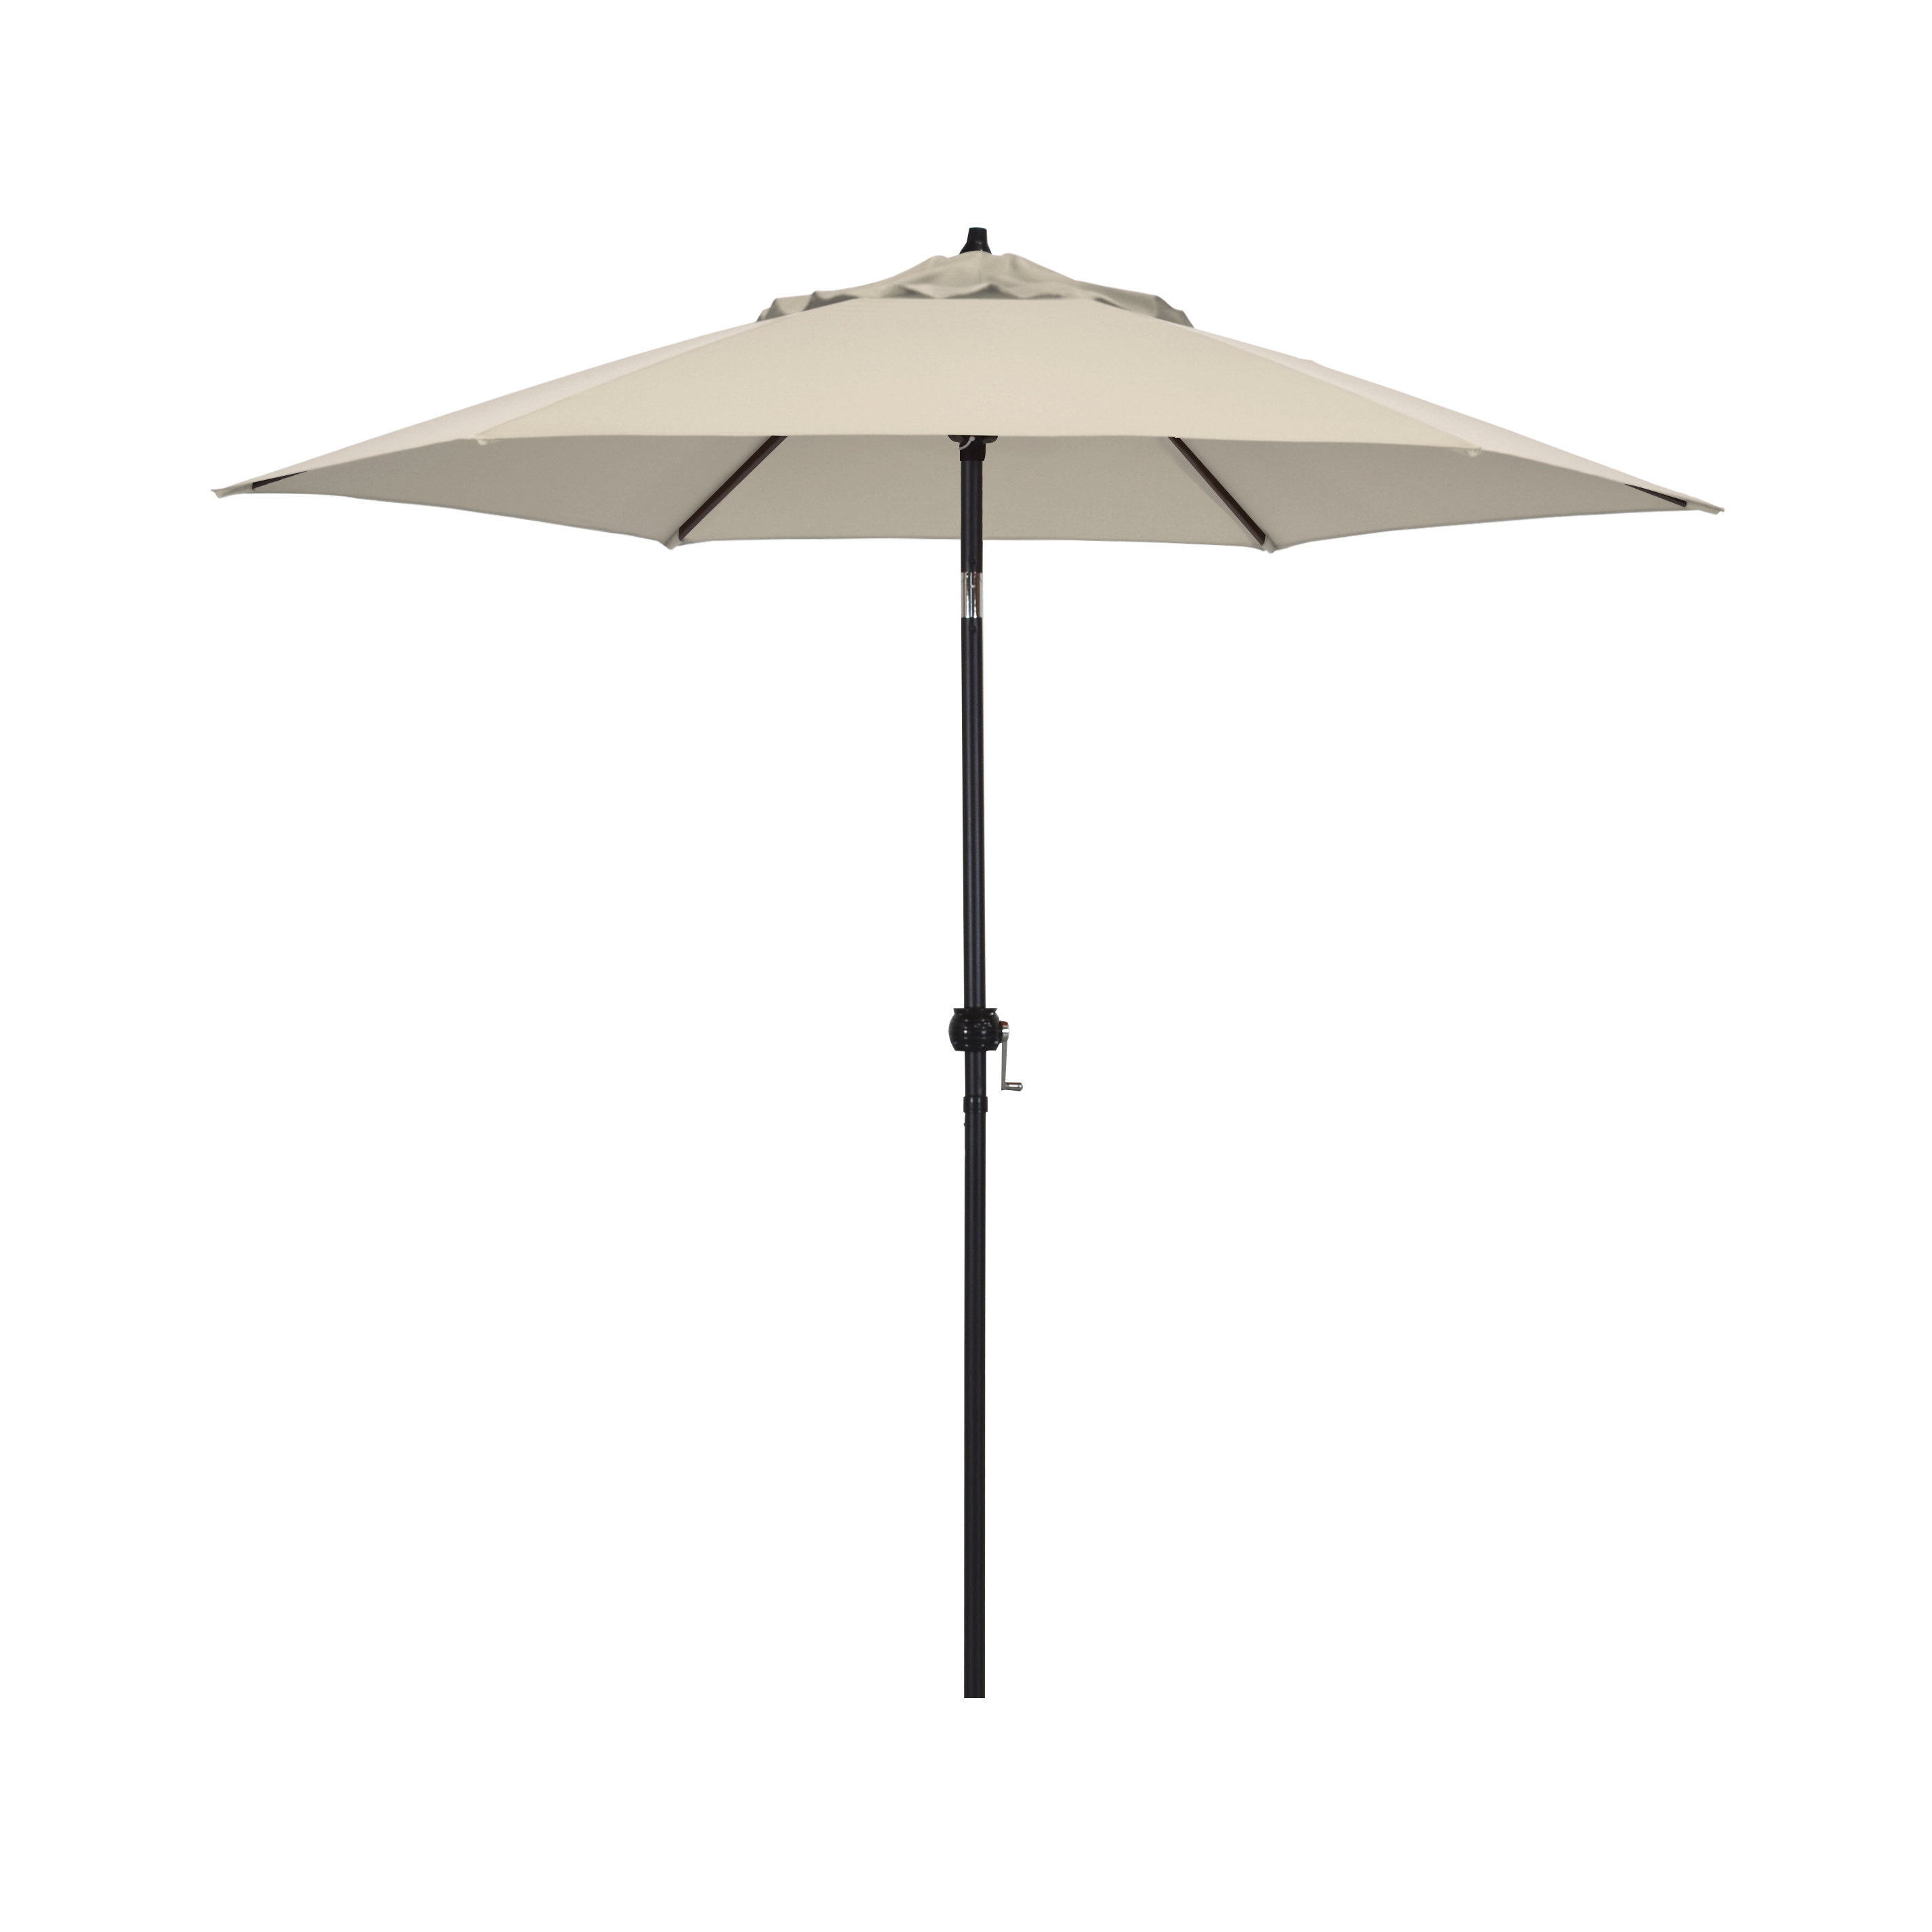 Kearney 9' Market Umbrella For Most Recently Released Ryant Market Umbrellas (Gallery 10 of 20)